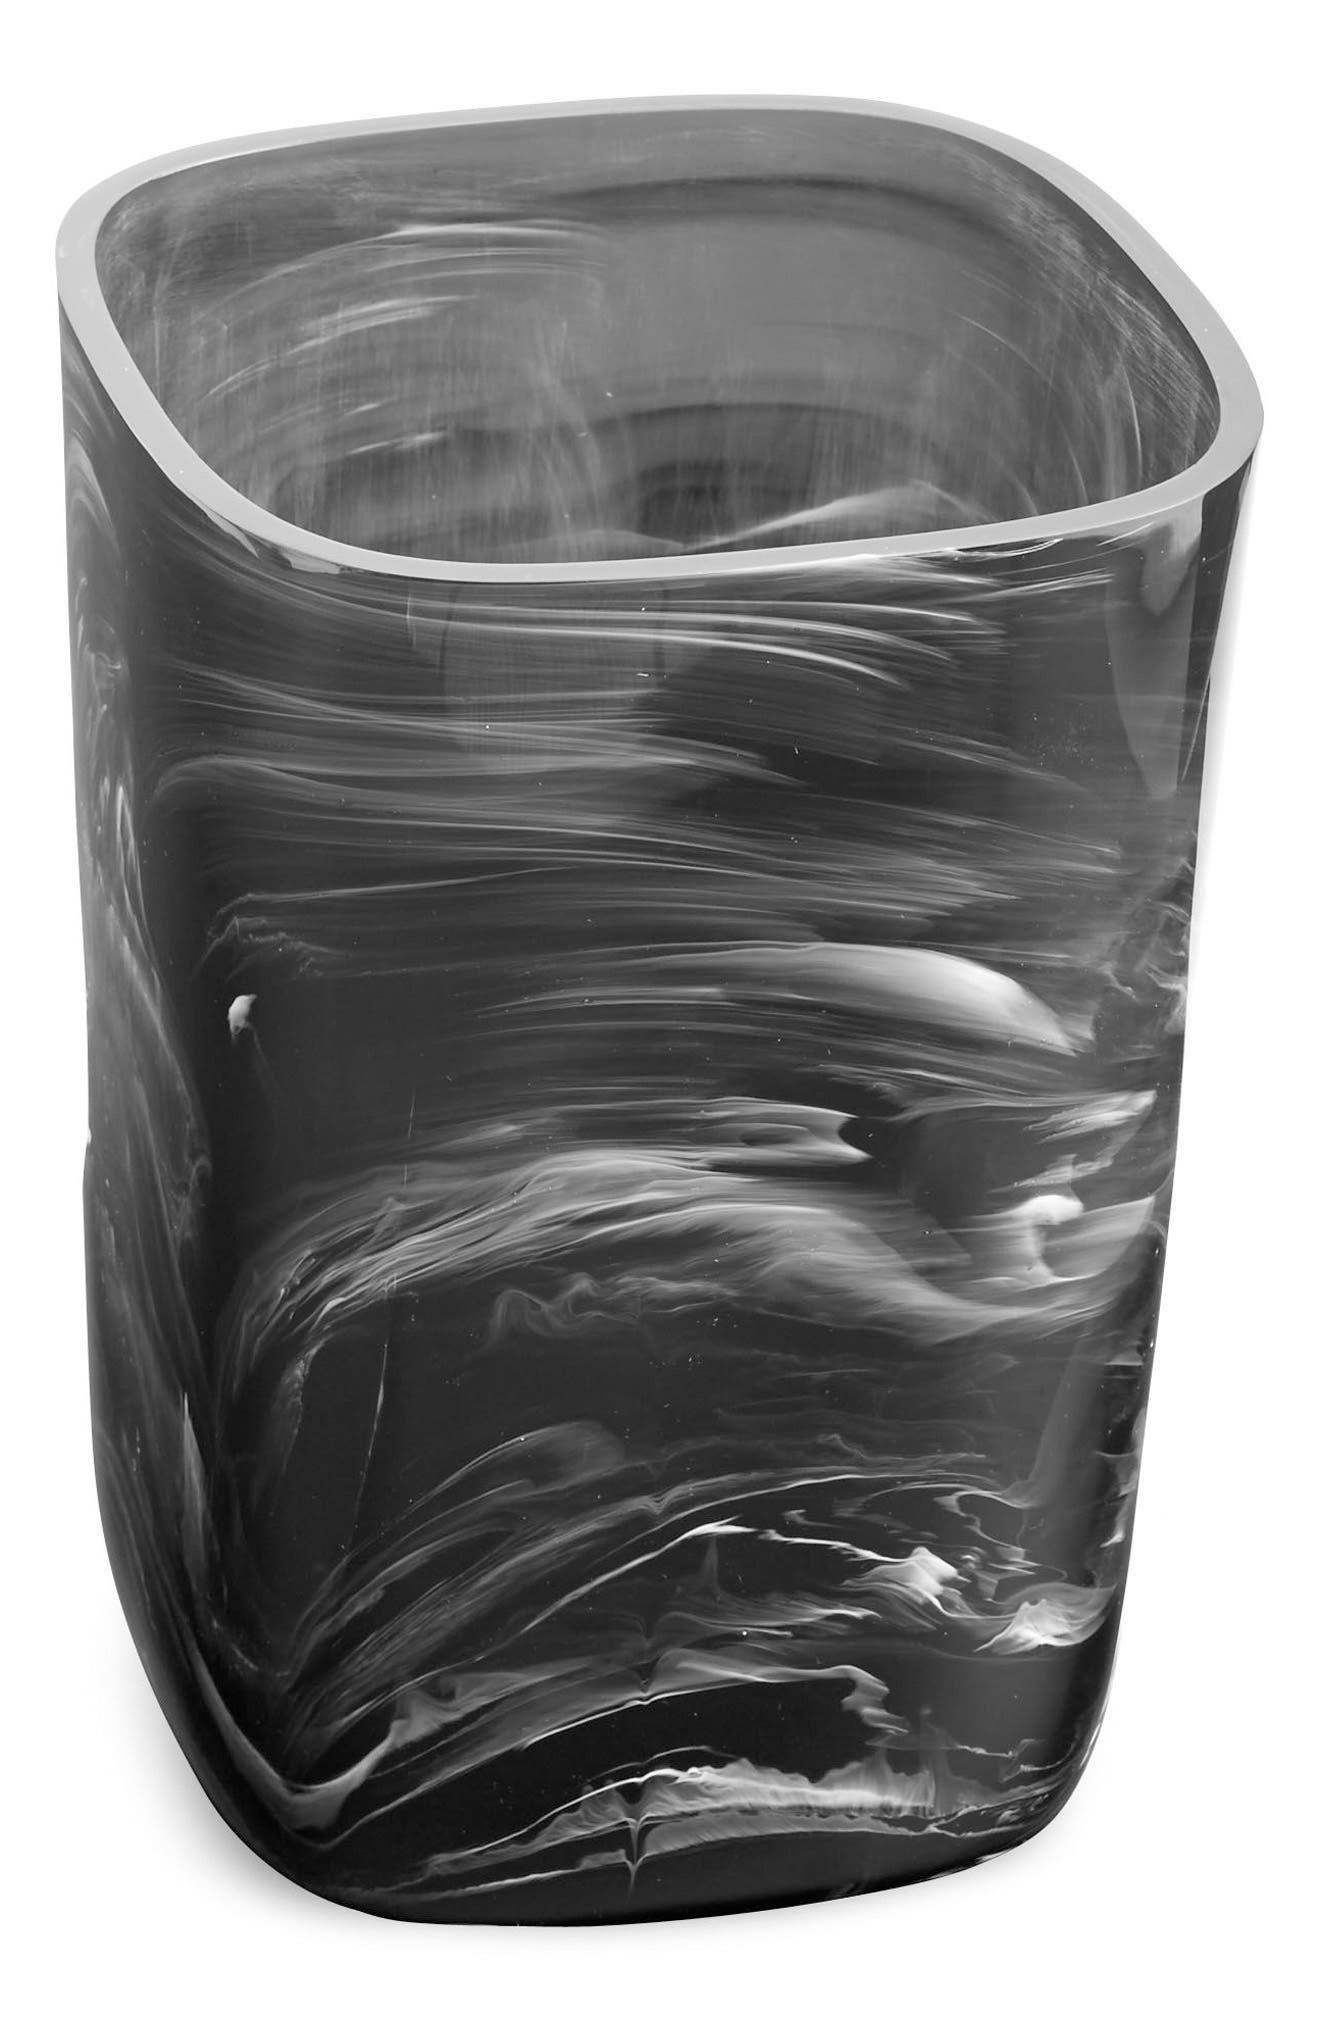 Murano Wastebasket,                             Main thumbnail 1, color,